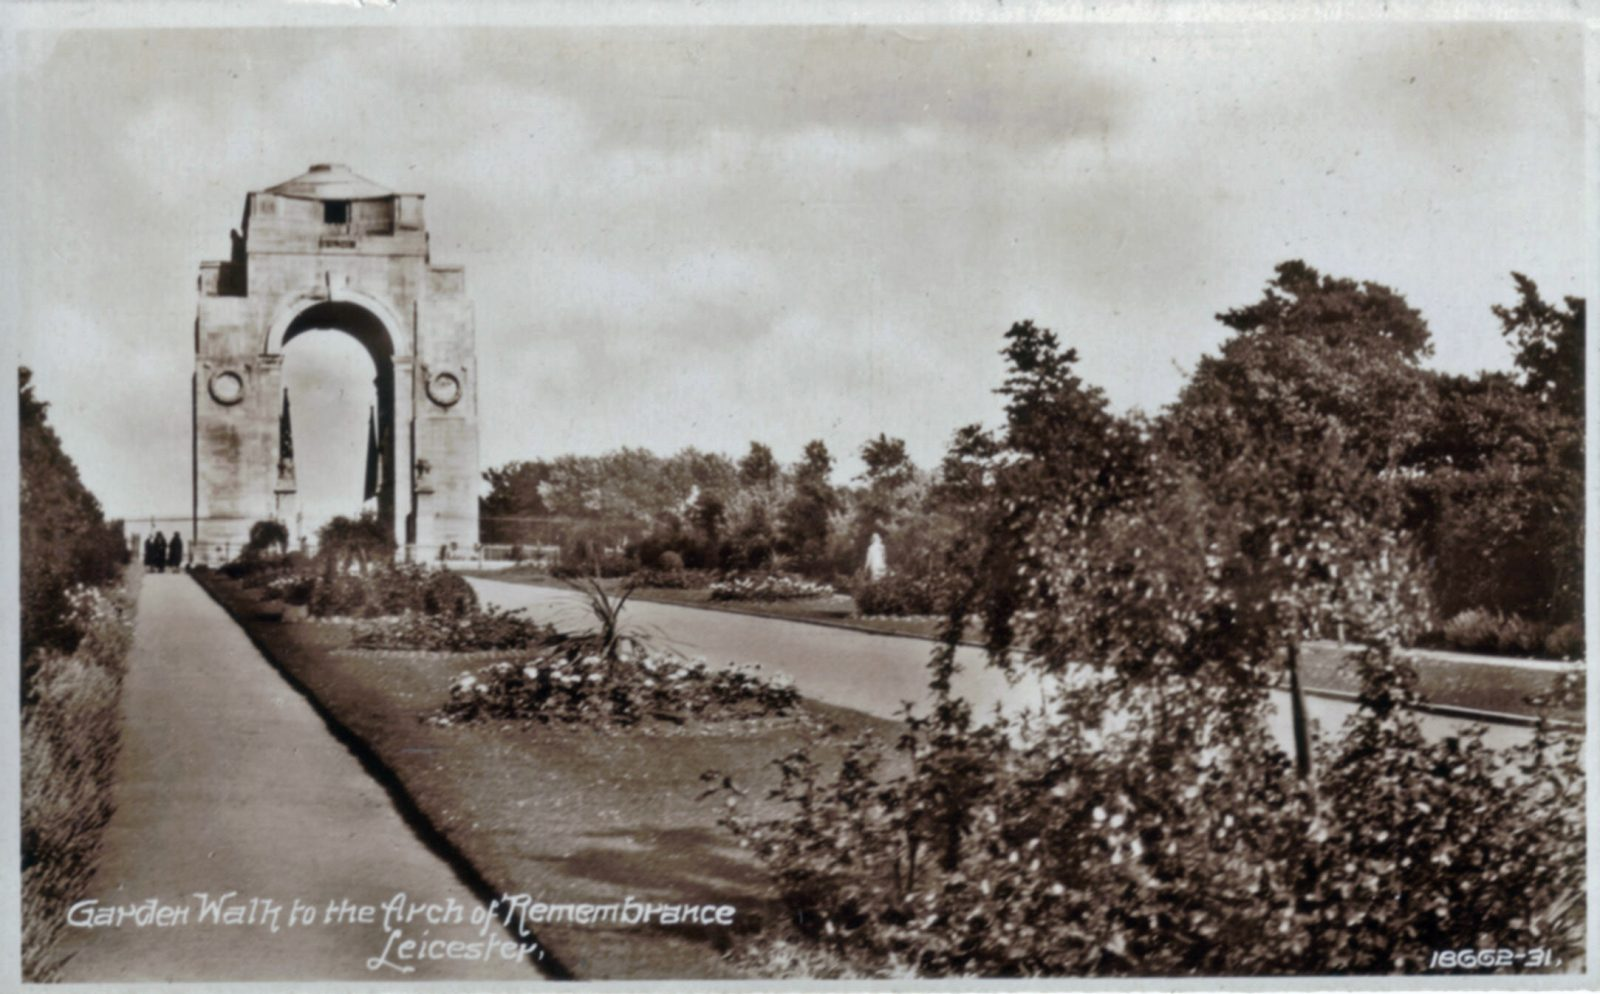 Victoria Park, Leicester. 1921-1940: Formal gardens leading to War Memorial. (File:1082)